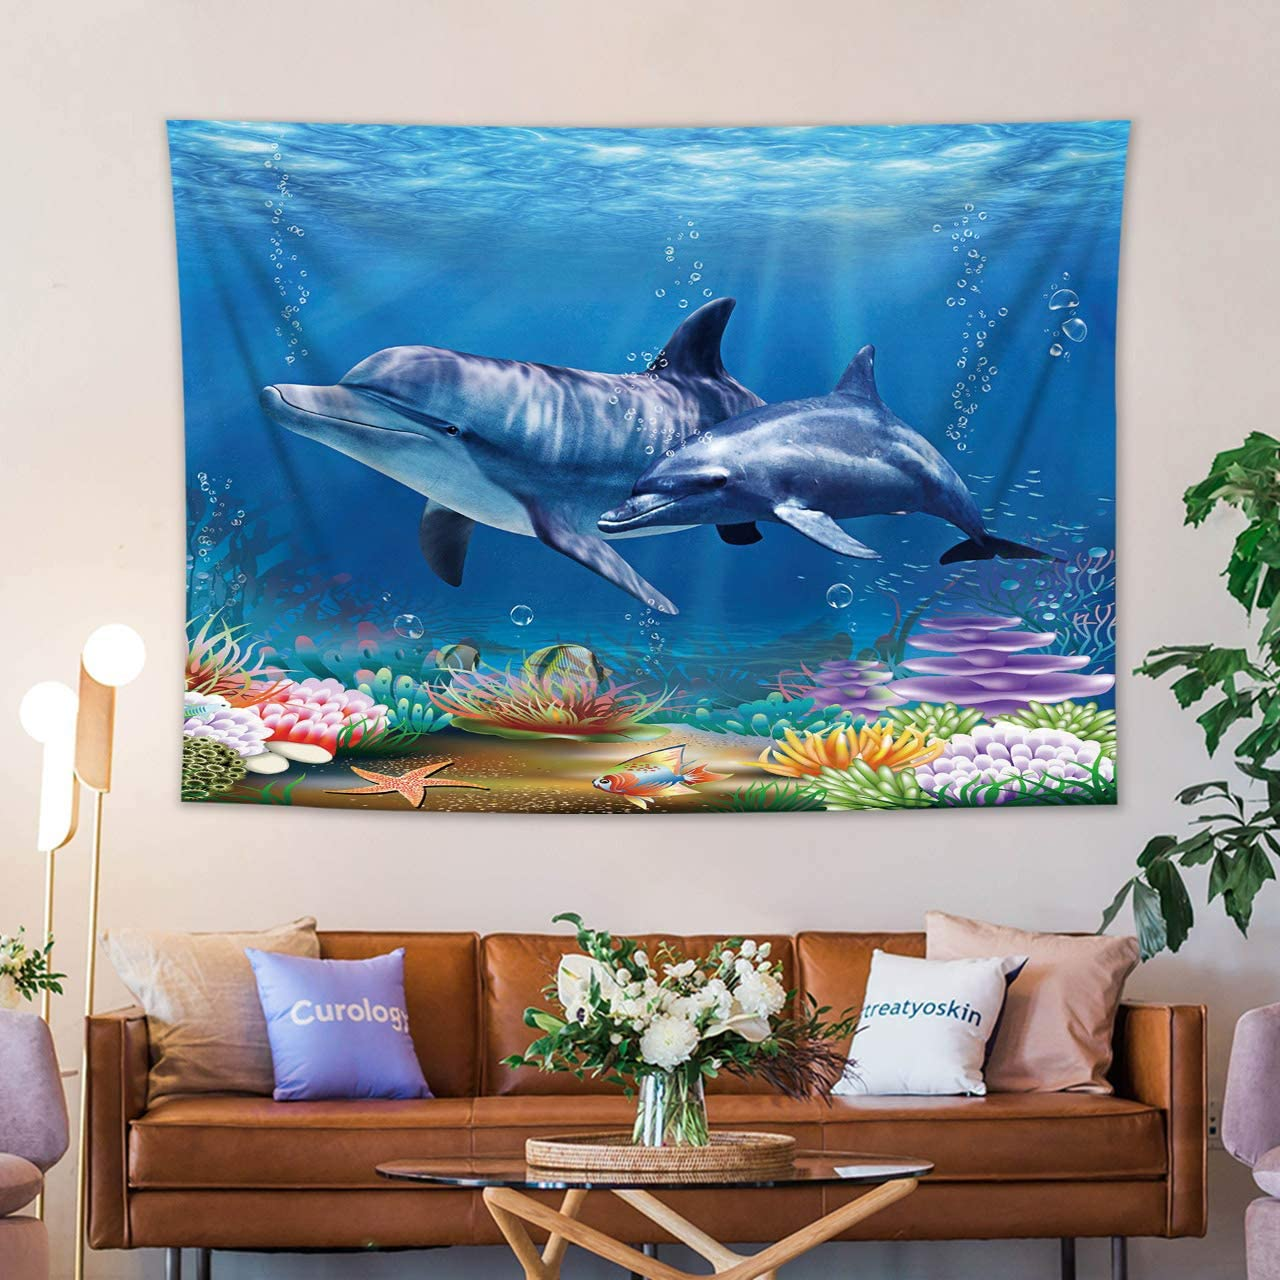 HVEST Dolphin Tapestry Blue Ocean Coral Reef Tapestry Wall Hanging Underwater World Dolphin Tapestry for Living Room Bedroom Kids Room Dorm Wall Hanging Blanket Home Decoration, 92.5×70.9 inches